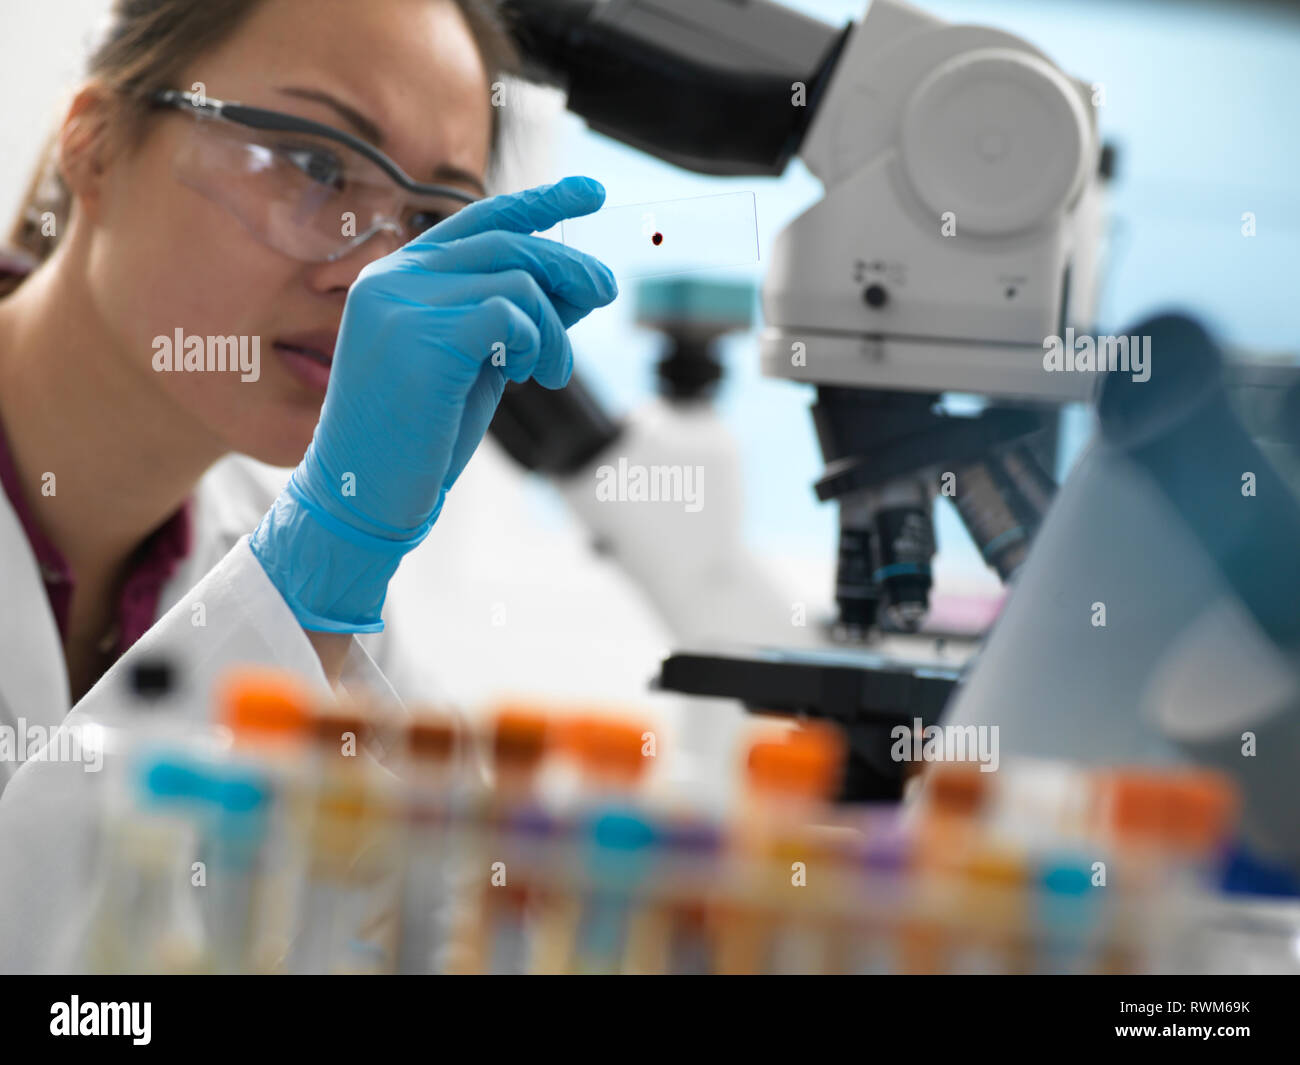 Scientist viewing human sample on glass slide before placing under microscope in laboratory Stock Photo